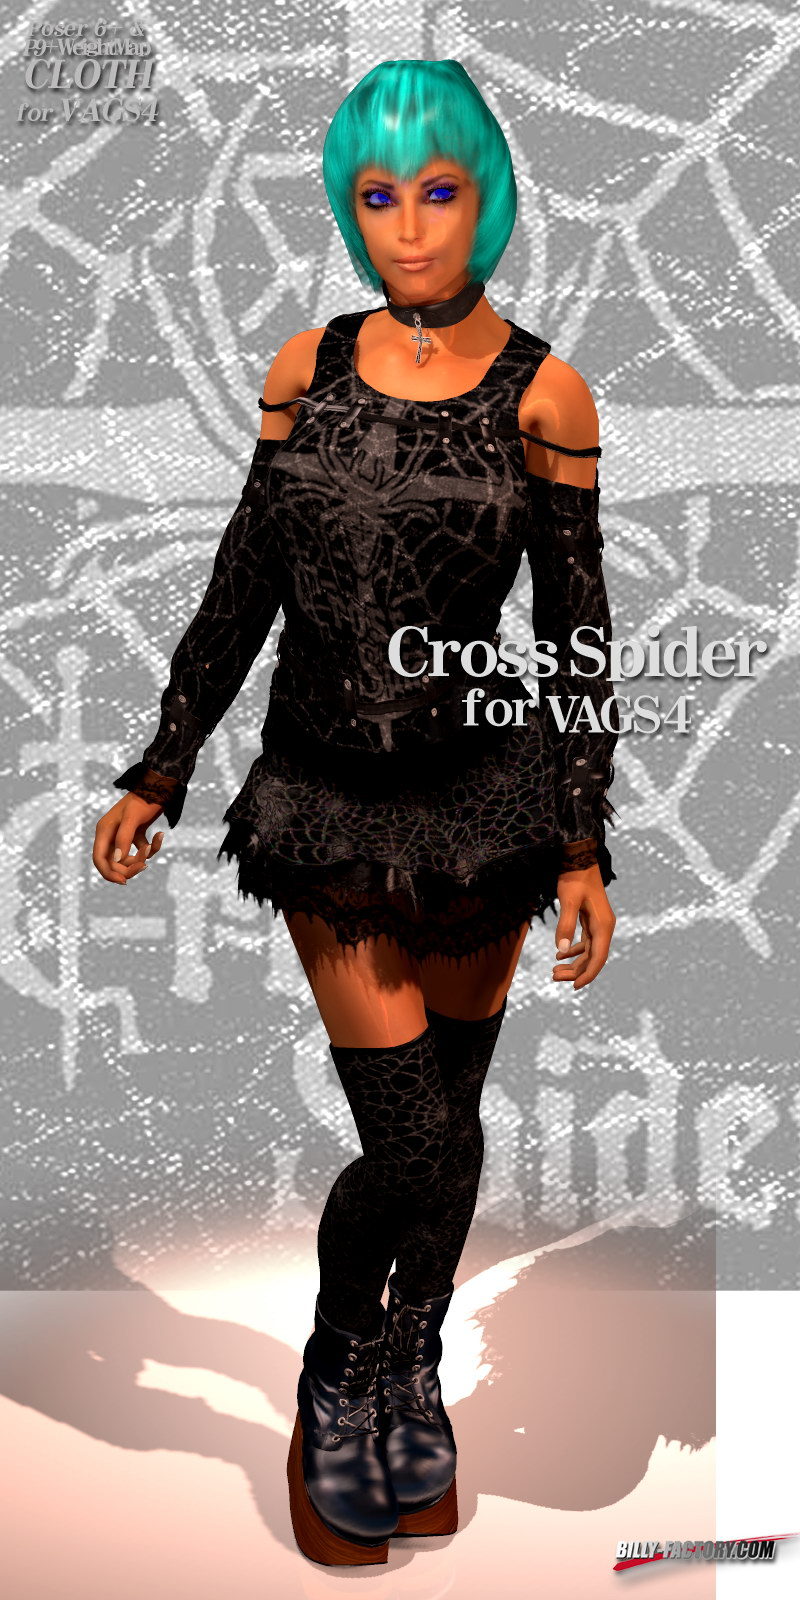 V4 Cross Spider